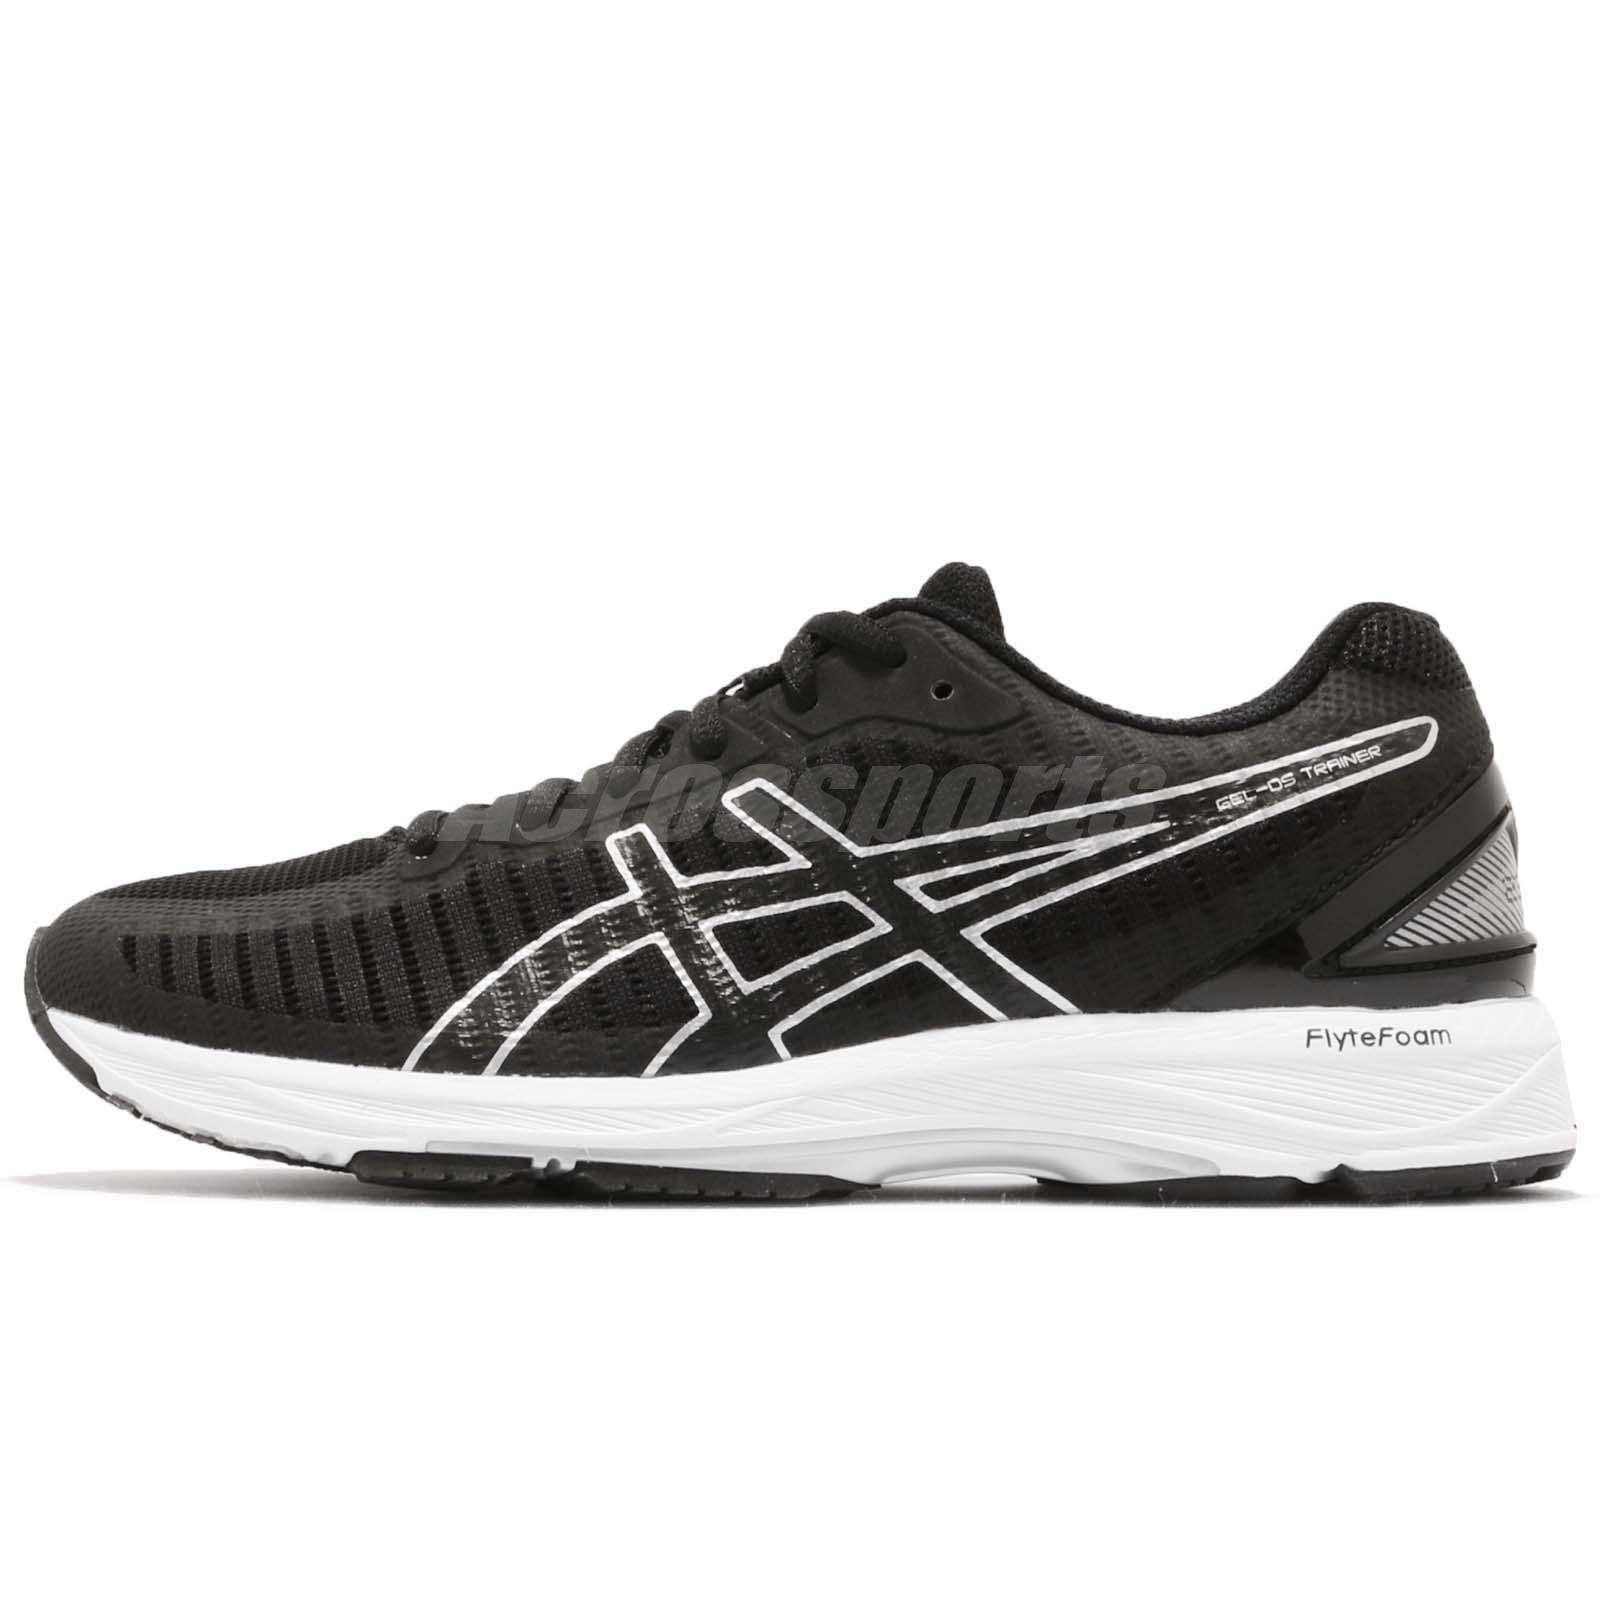 Details about Asics Gel-DS Trainer 23 Black Silver White Women Running  Shoes Sneaker T868N-001